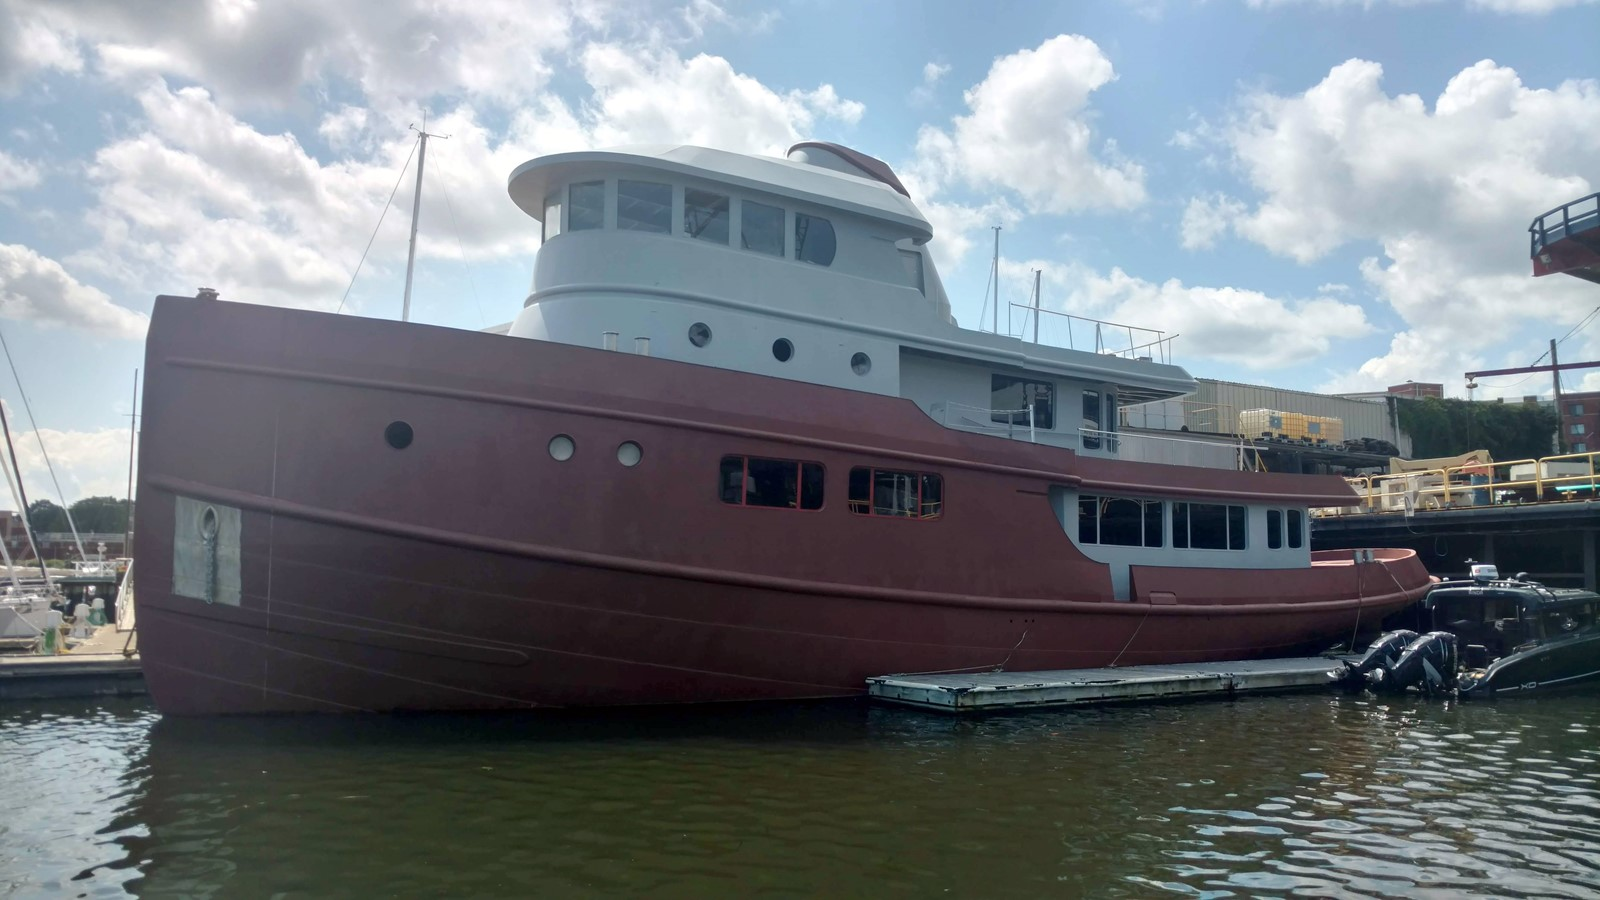 2018 GULFPORT SHIPBUILDING CORP Tug Boat Commercial Vessel 2310943